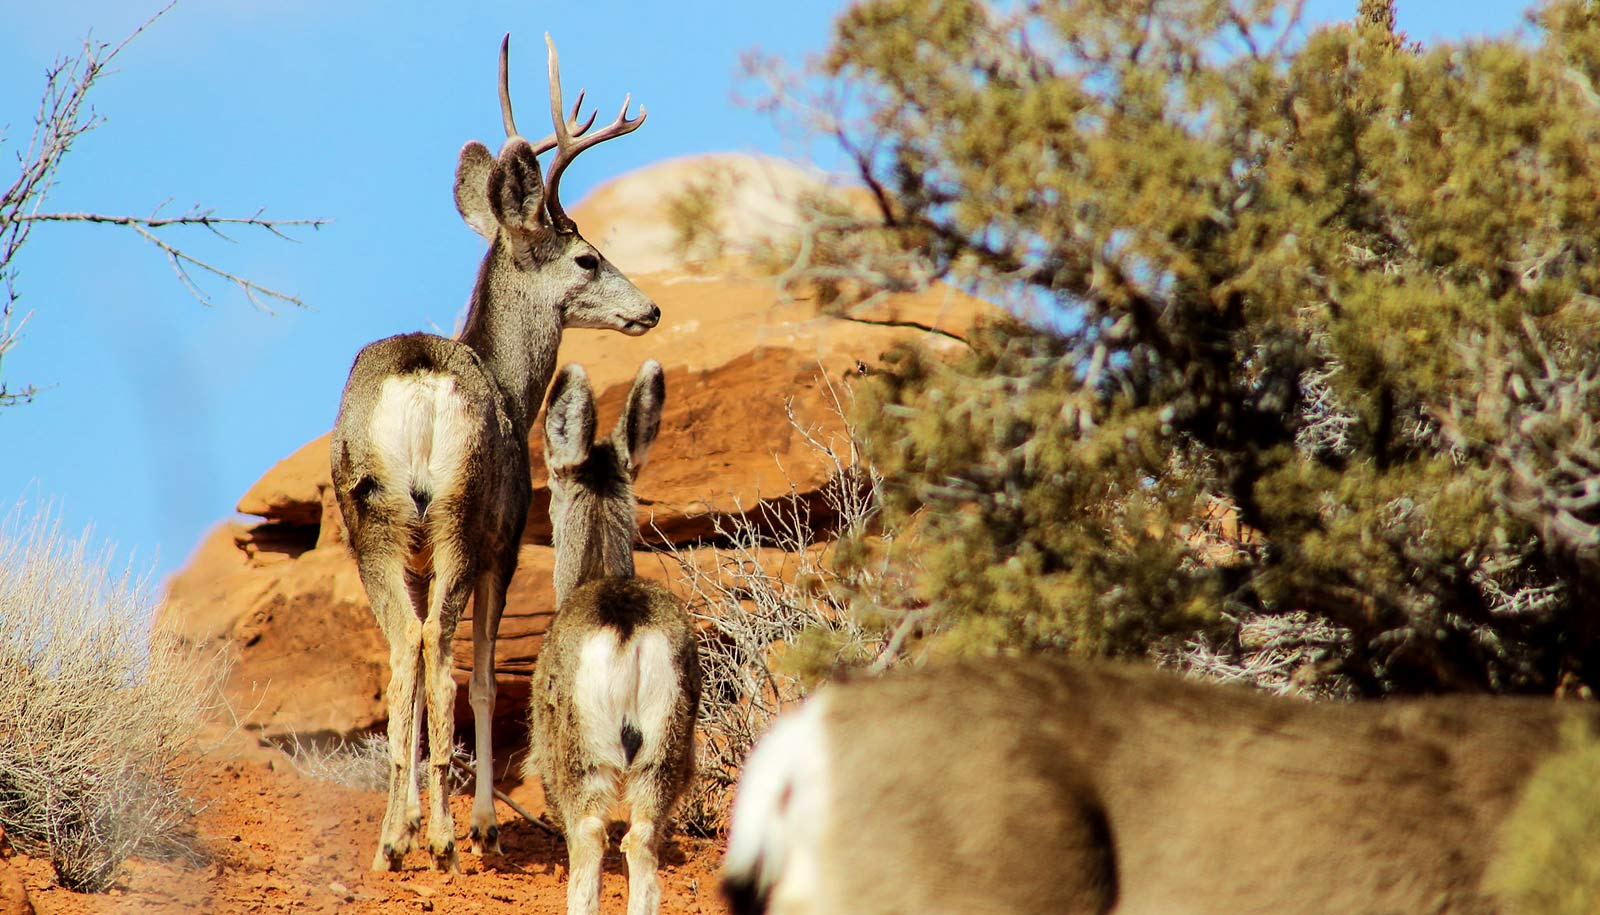 Migration maps help protect the corridors herds need